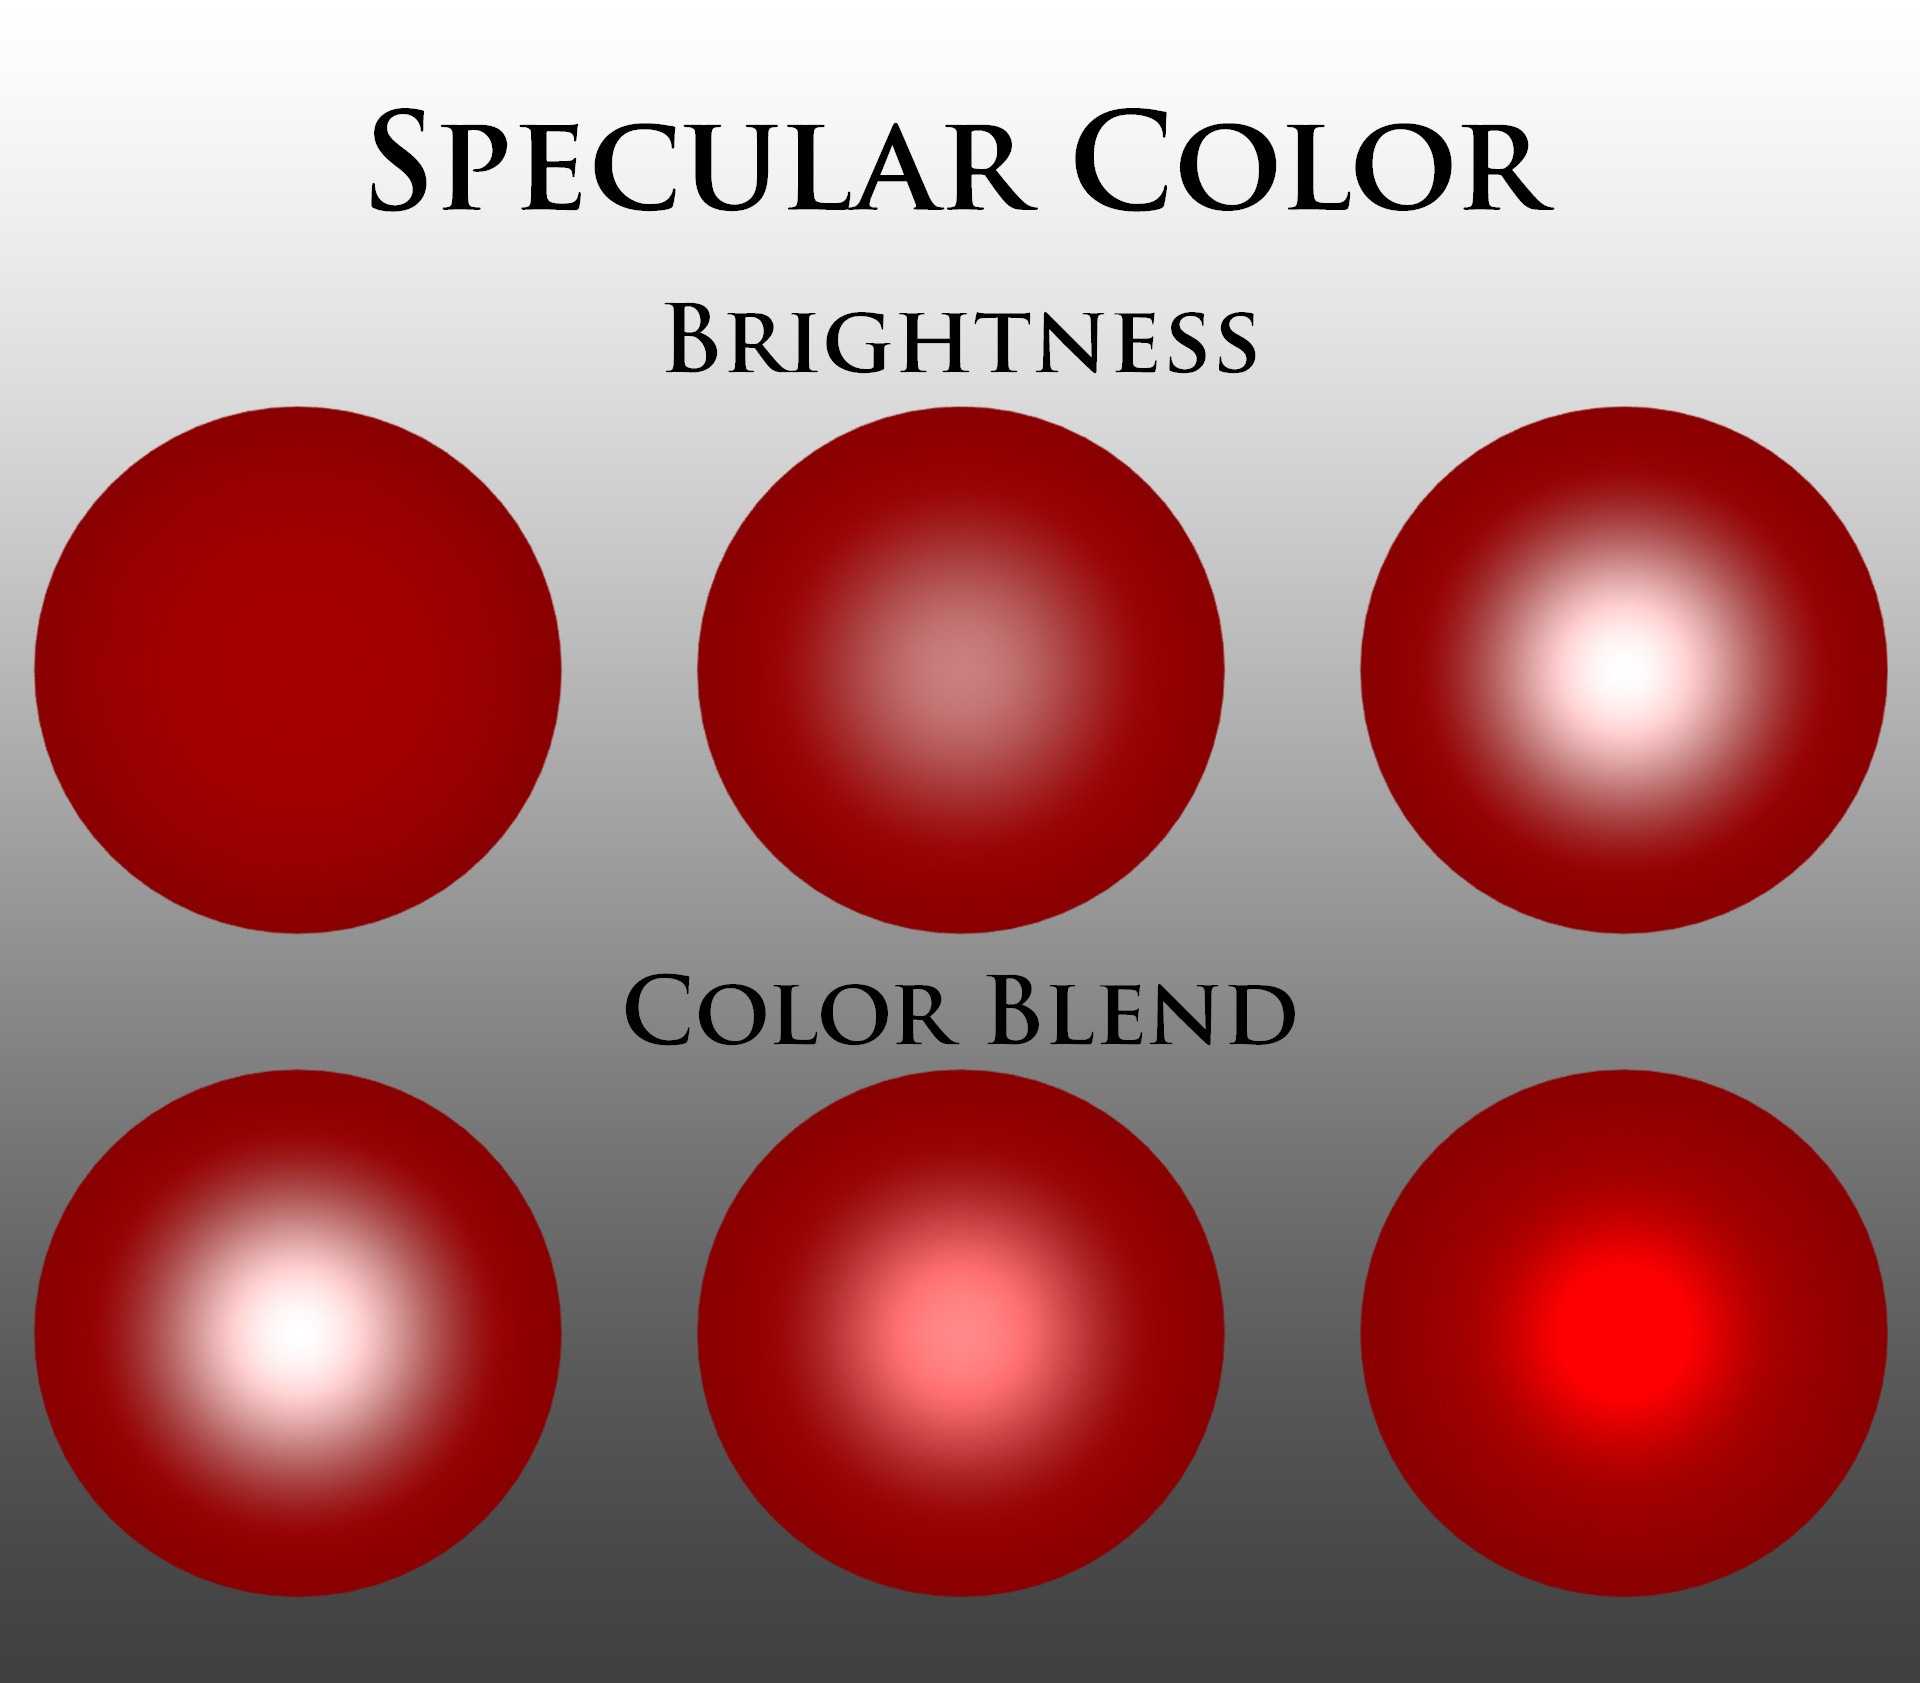 Game maker color blend - Nu_specularcolor R G B Color Blend